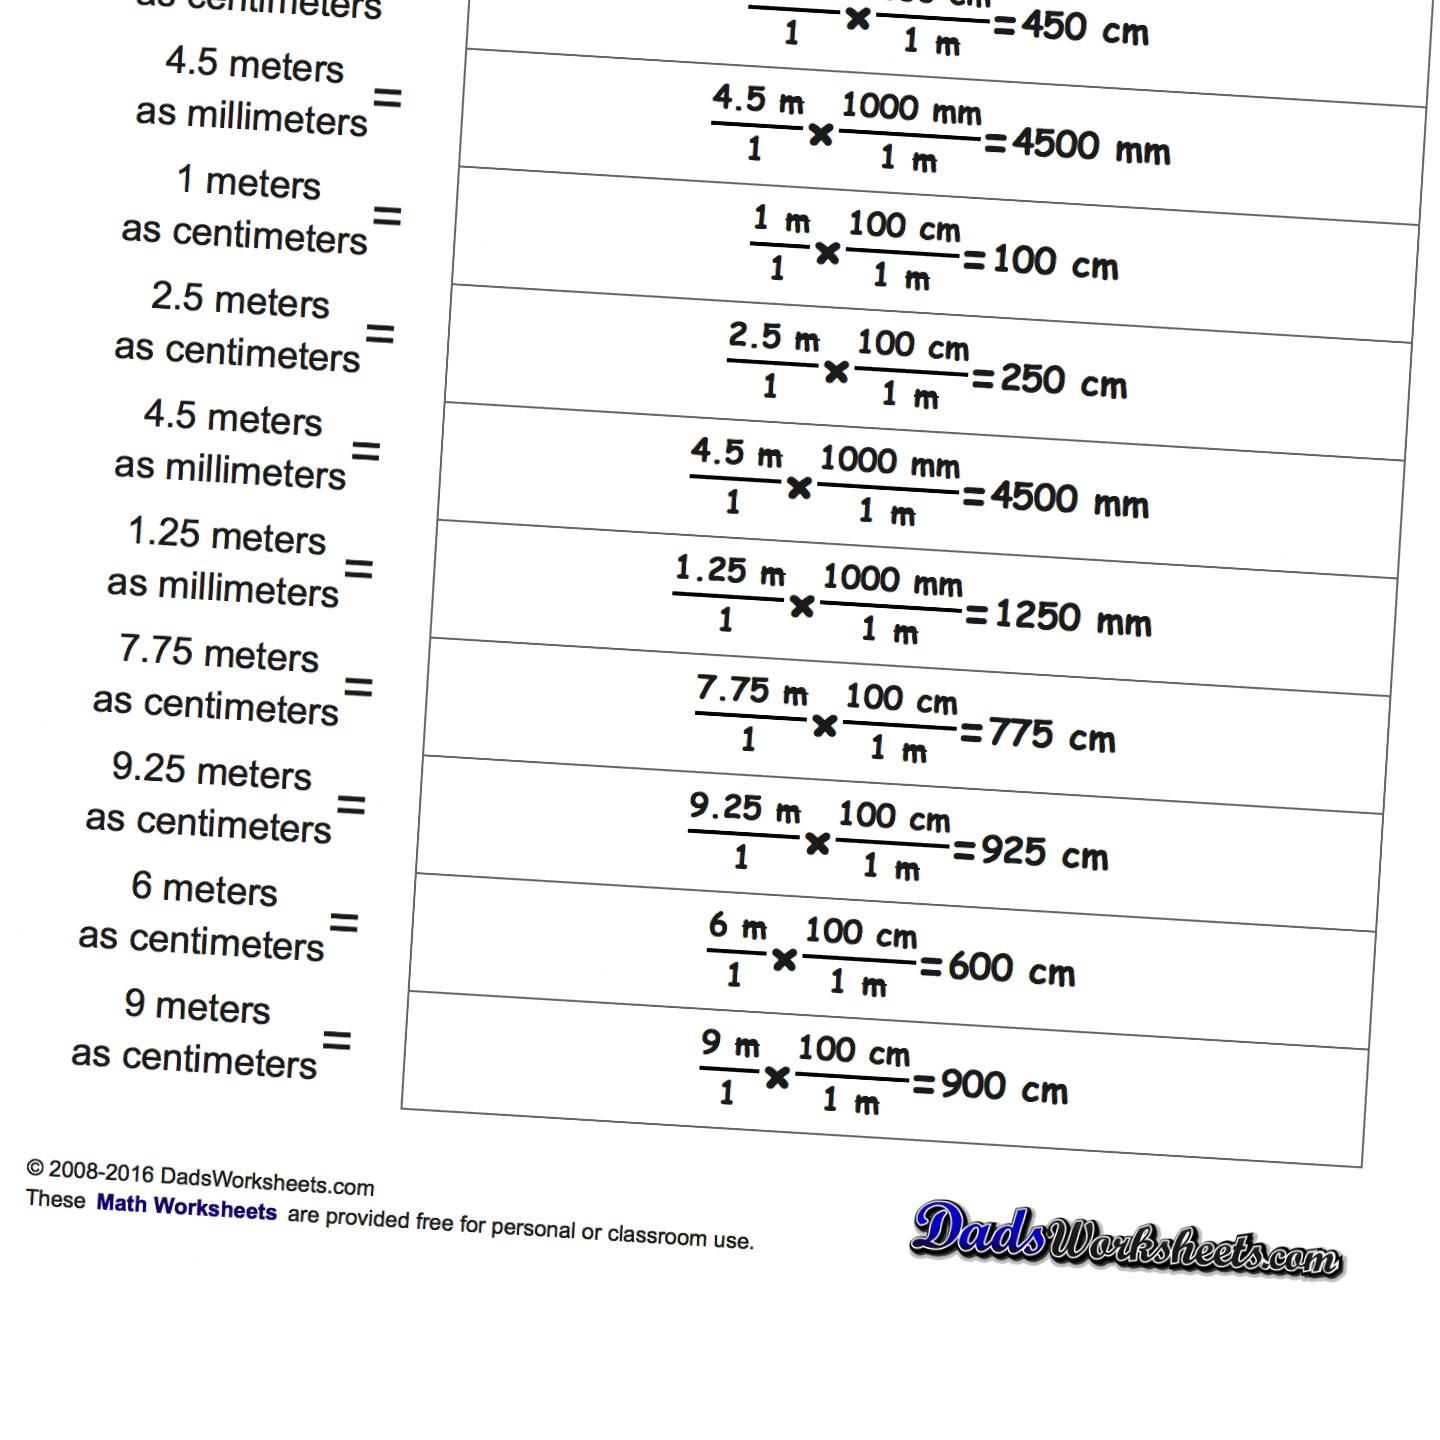 Worksheets Conversion Of Units Worksheets unit conversions worksheet answers daway dabrowa co metric si this page contains links to free math answers